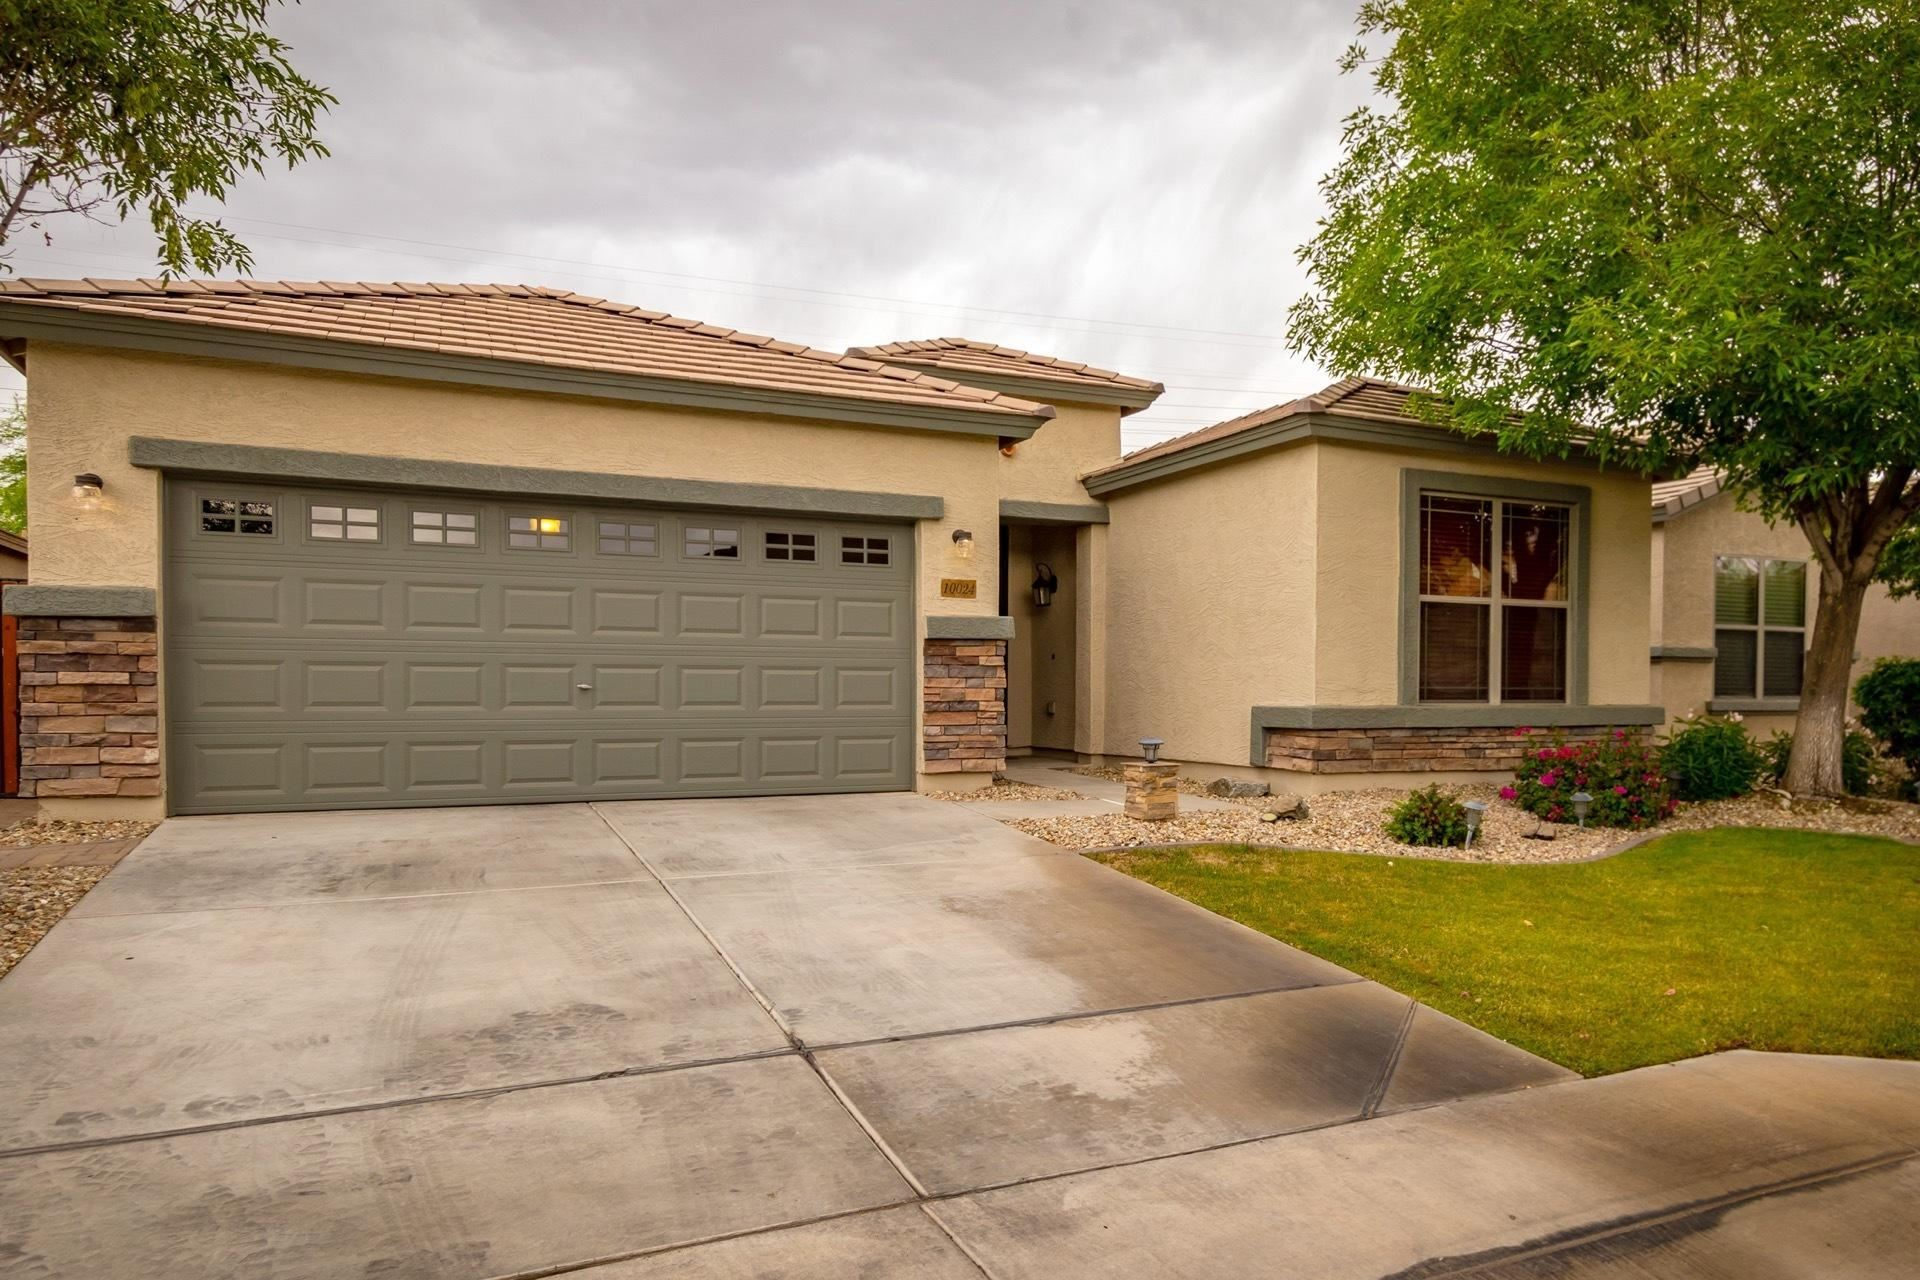 Photo of 10024 W RAYMOND Street, Tolleson, AZ 85353 (MLS # 6229035)